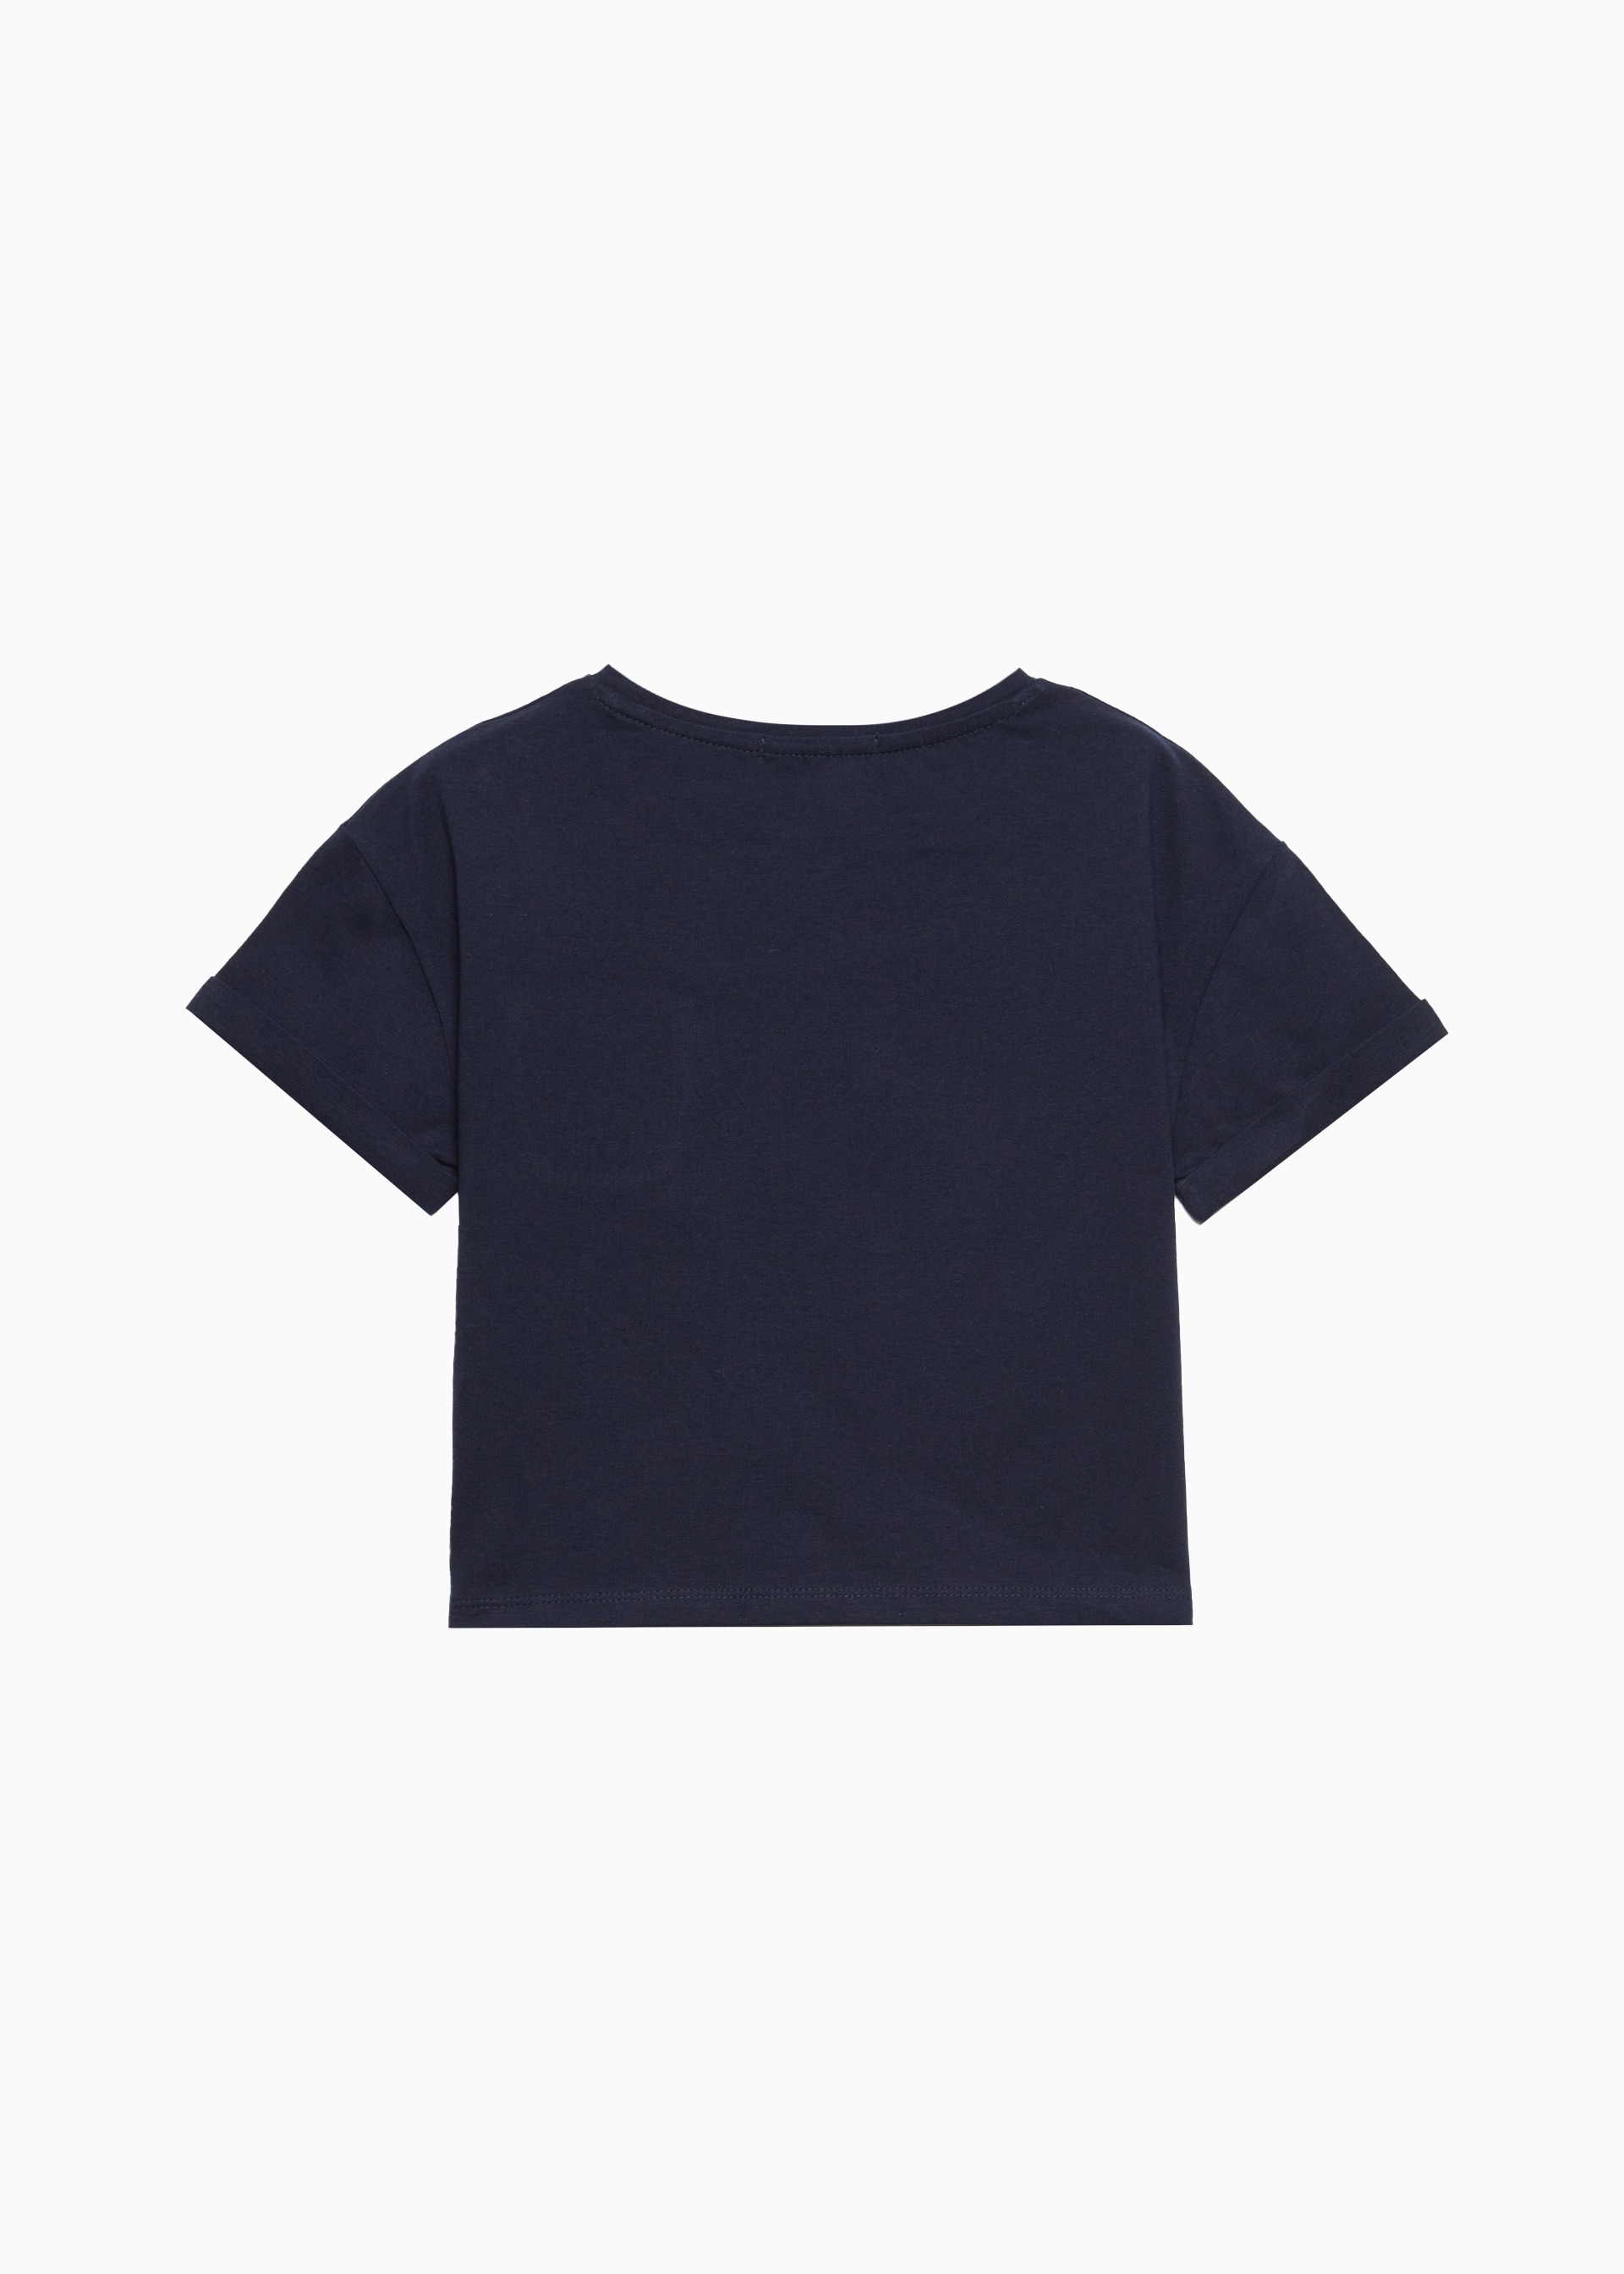 T-shirt boxy shape